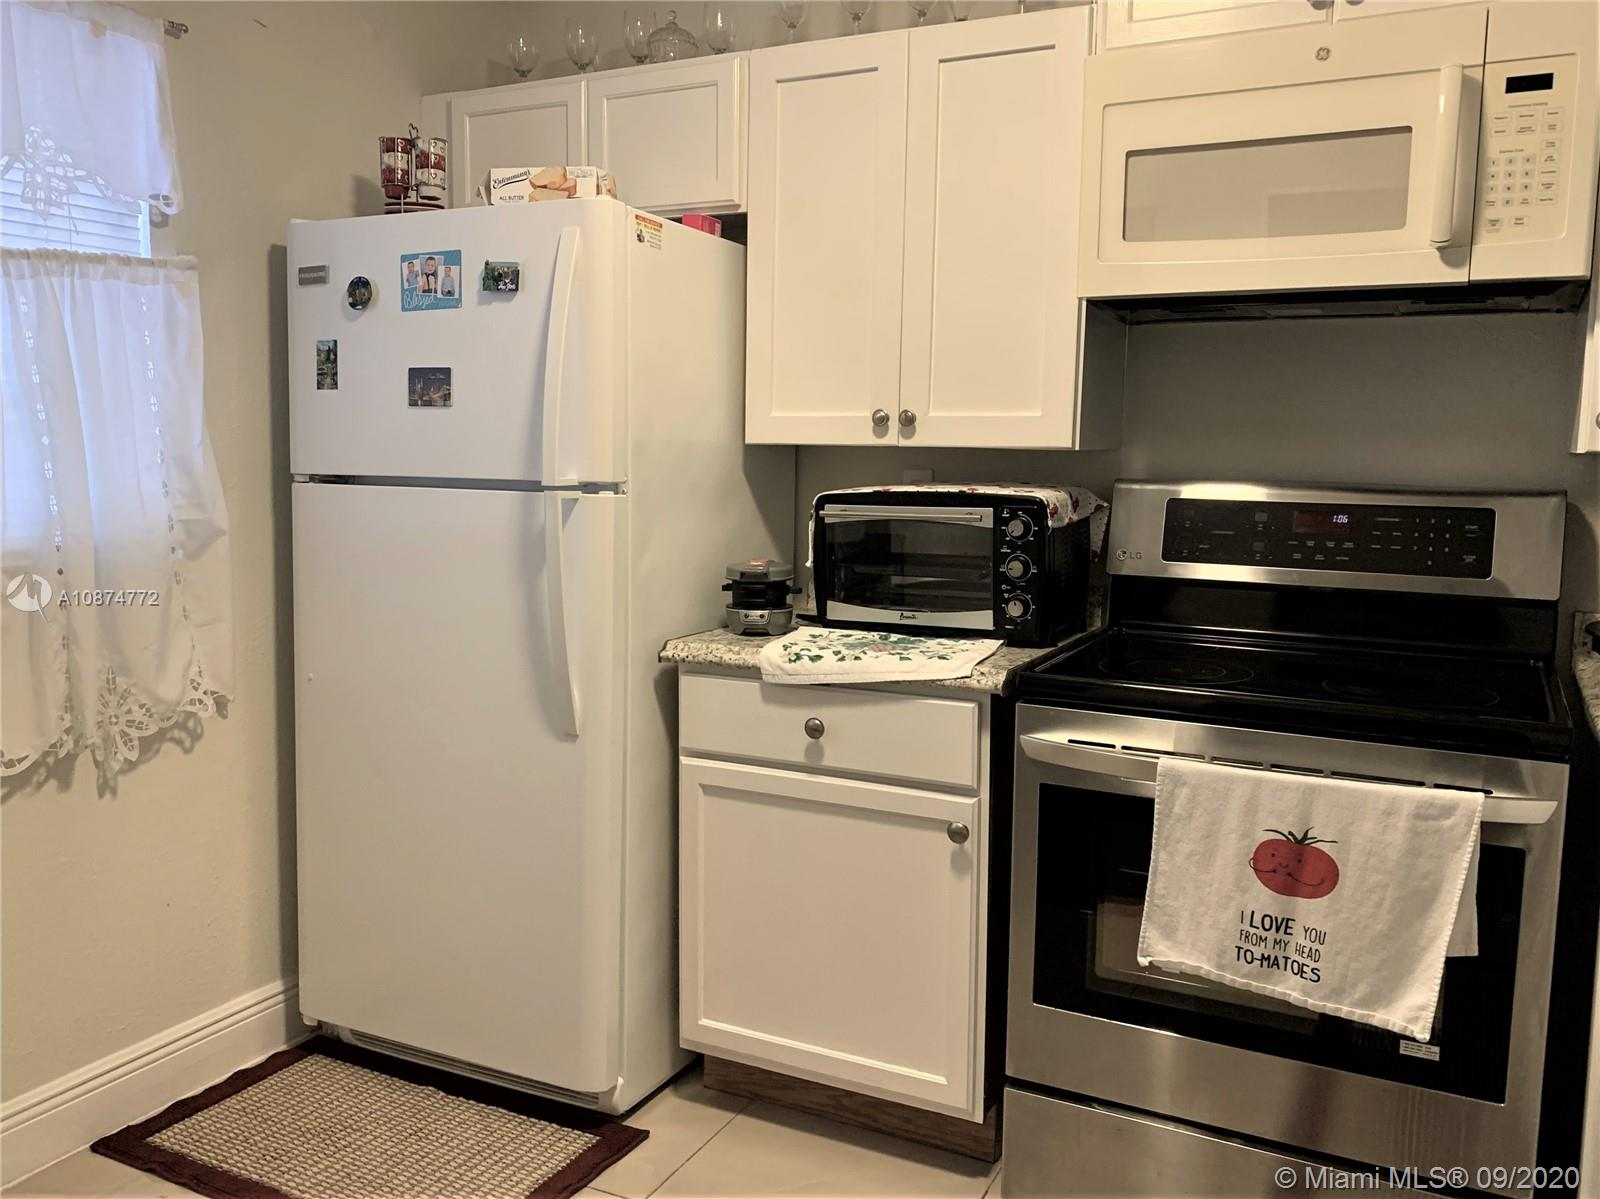 Special for investors 2 bedroom 2 bathrooms in excellent condition, Corner Unit with Hurricane shutter, Tile throughout , Update Electric box, Updated kitchen cabinet, Freshly painted, only $235 maintenance 1 A tenants paying $1,250.00 with a year contract.